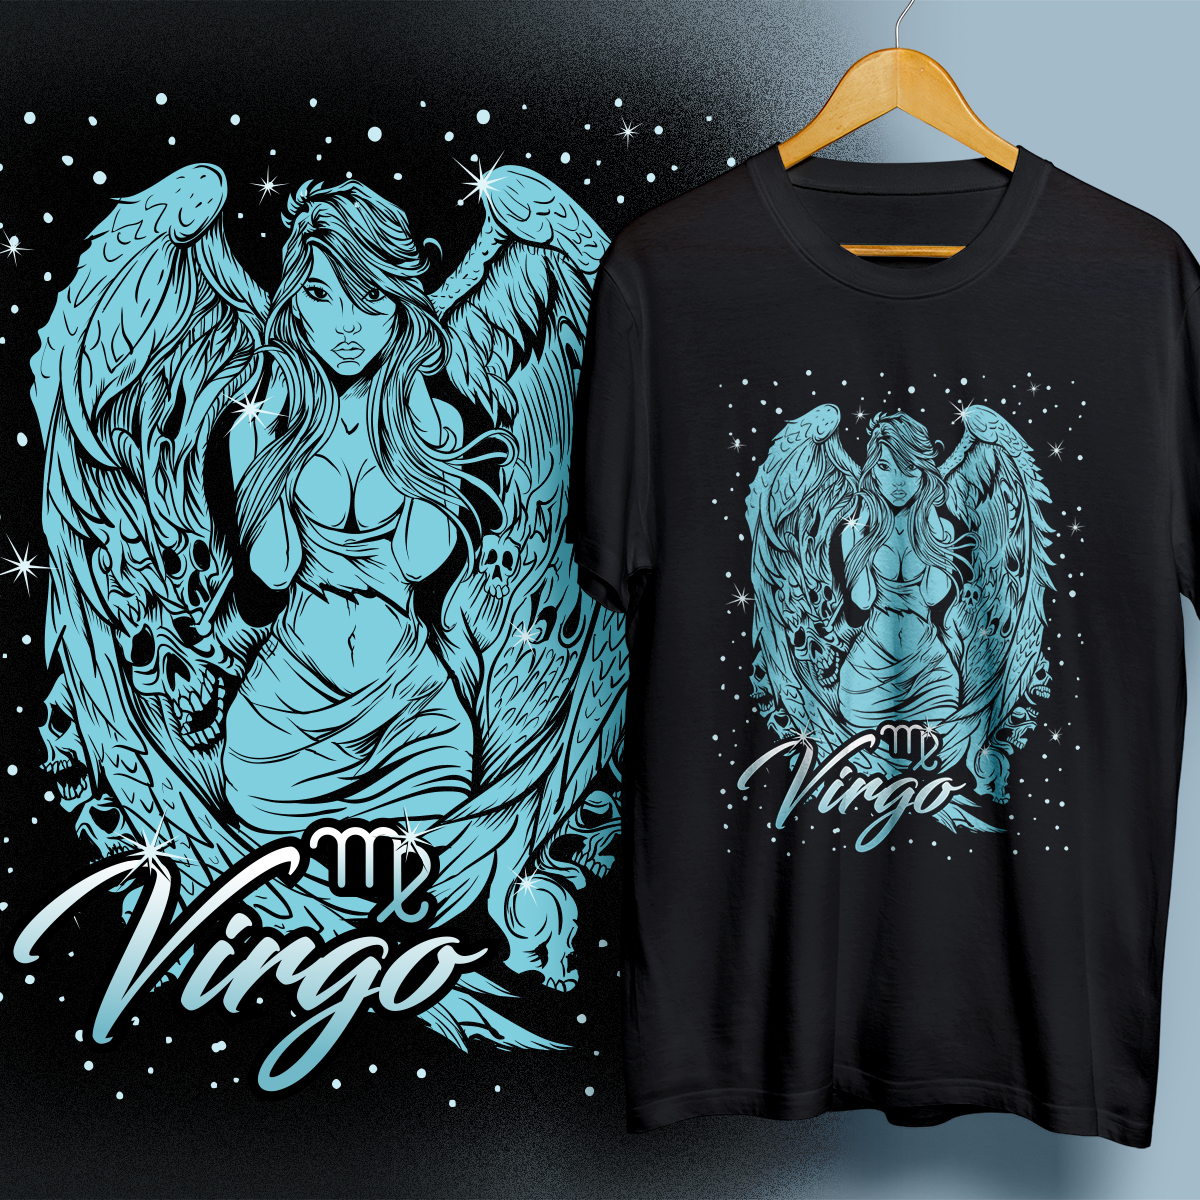 Modern Personable T Shirt Design For Zodiac Fresh By 99gree